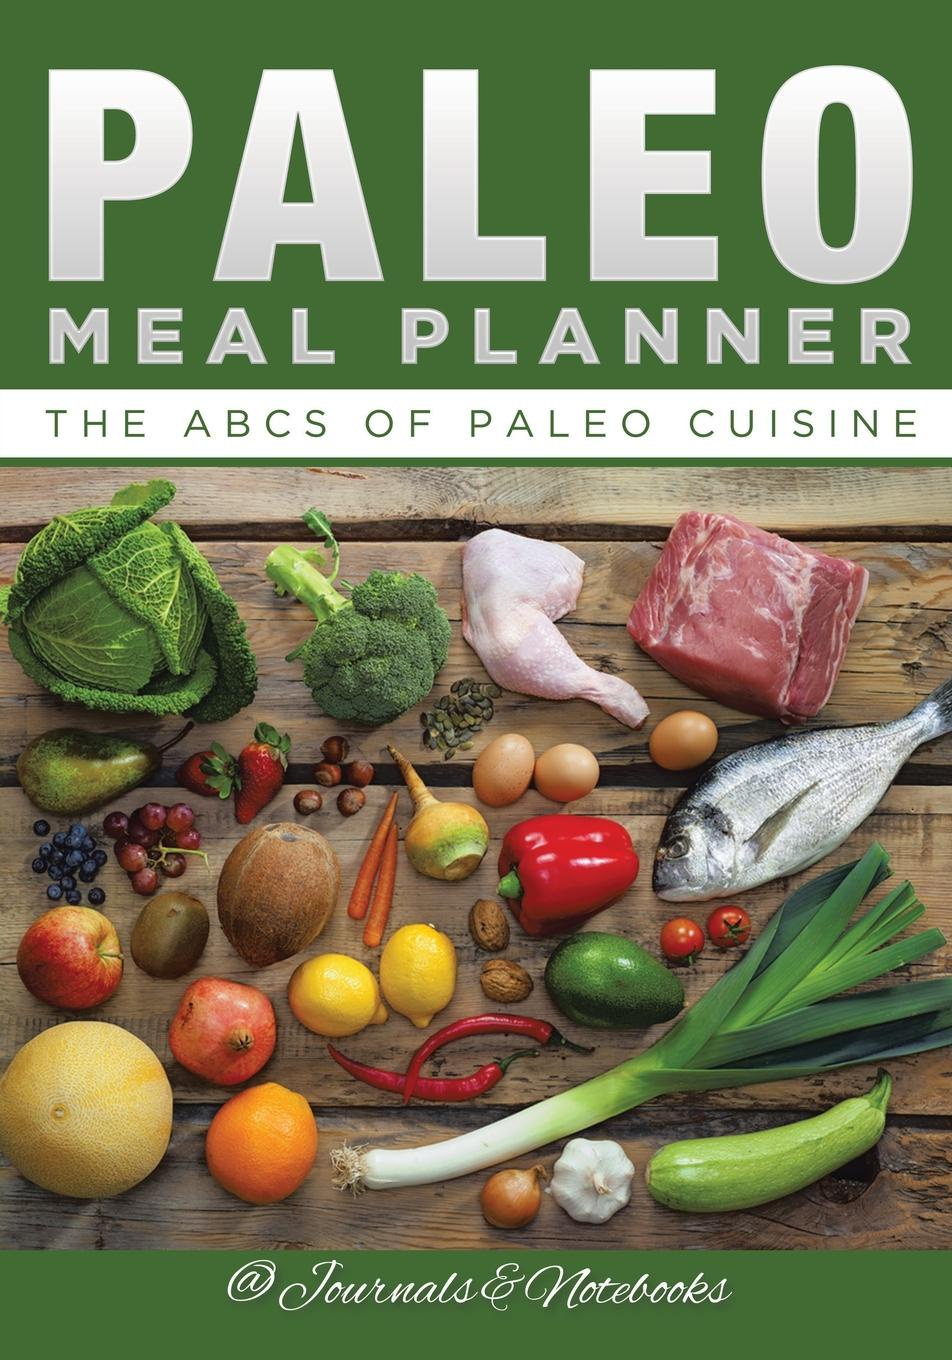 @ Journals and Notebooks Paleo Meal Planner. The ABCs of Paleo Cuisine nilofer safdar money circle what choice are you willing to make today to create a different future right away